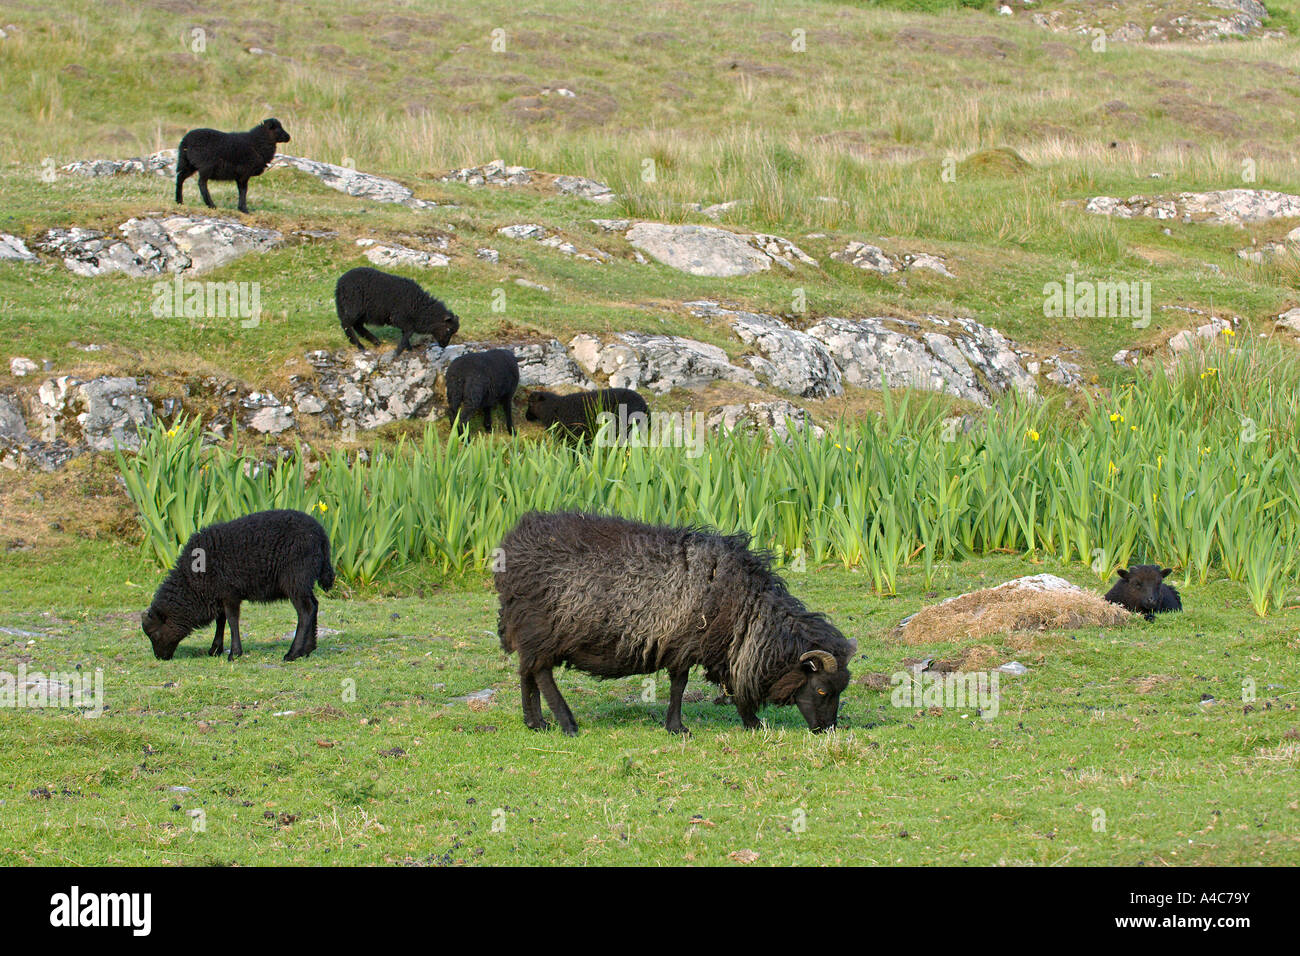 Hebridean Sheep (Ovis ammon aries), grazing group. - Stock Image